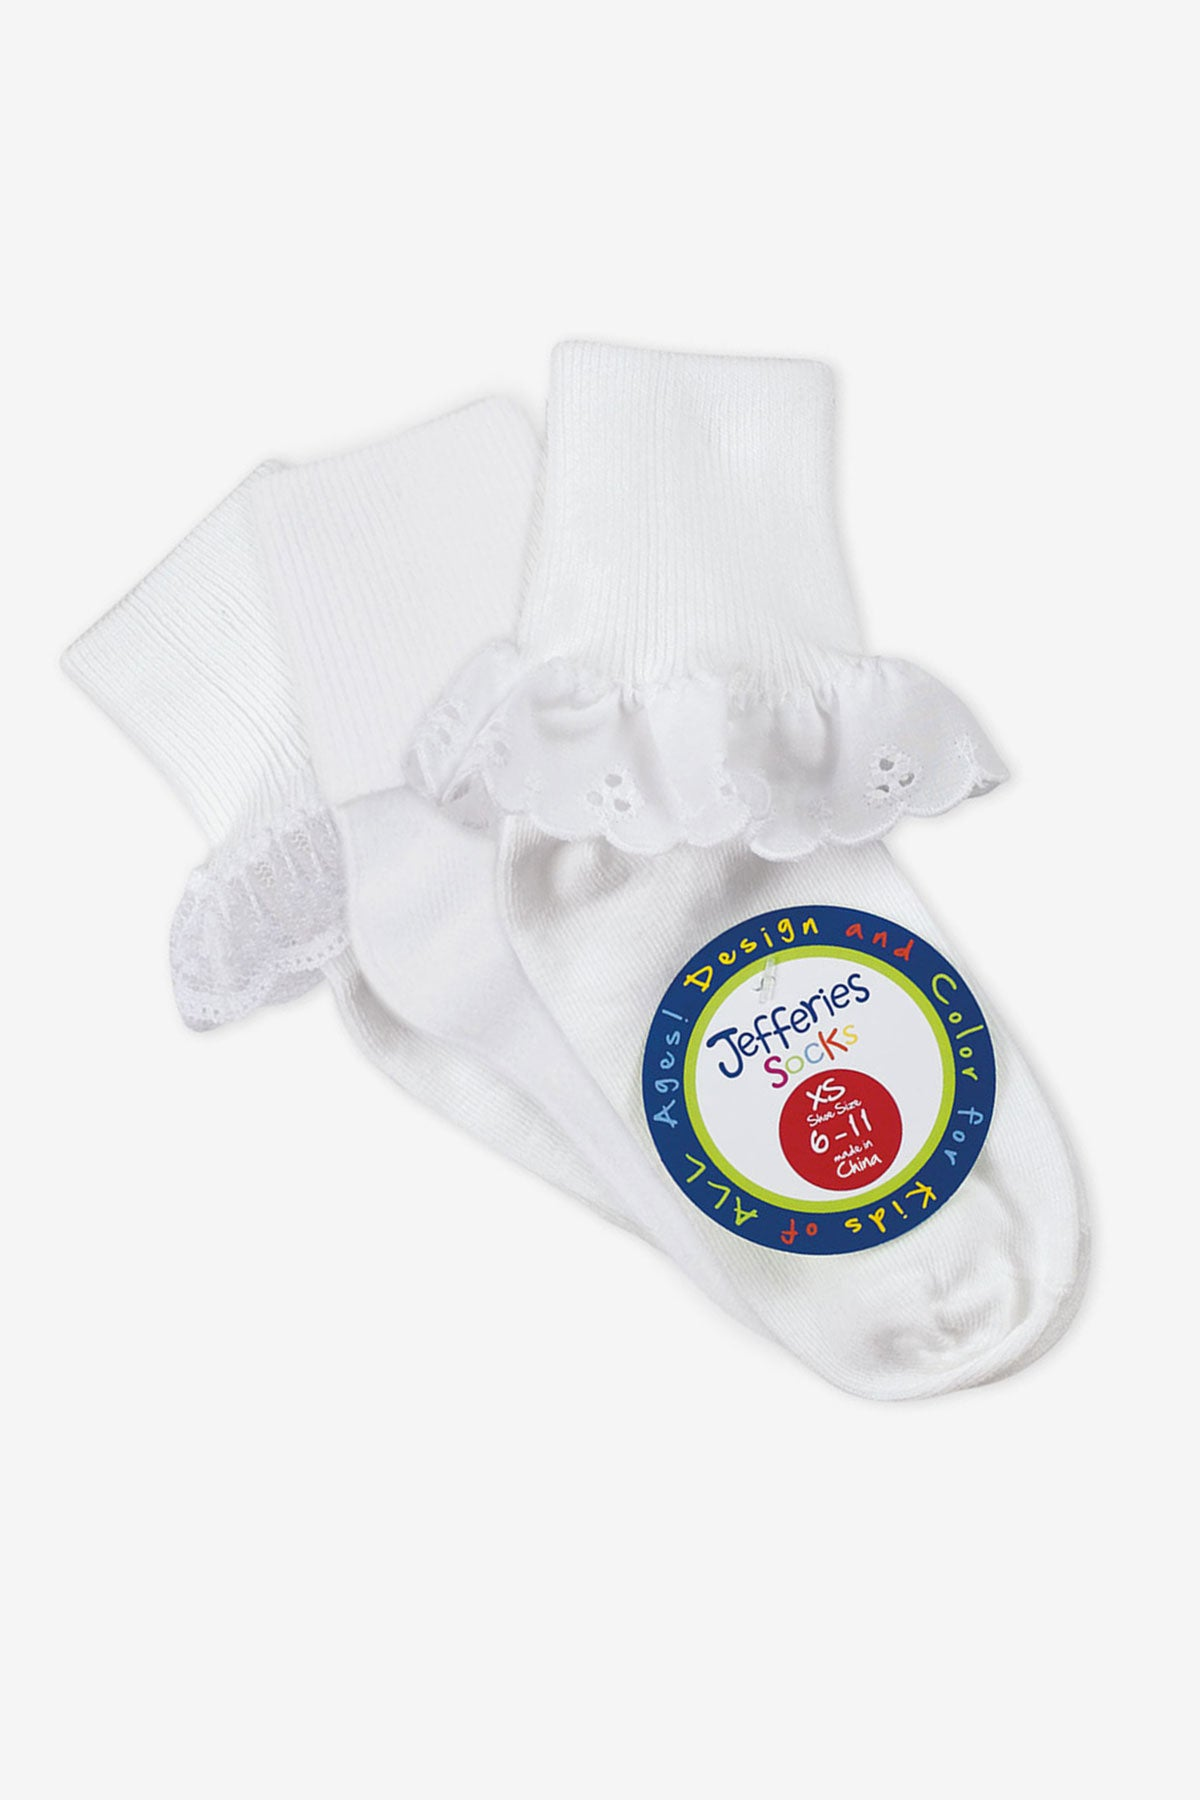 Jefferies Socks Eyelet/Turn Cuff/Lace Girls Socks 3-Pack - White